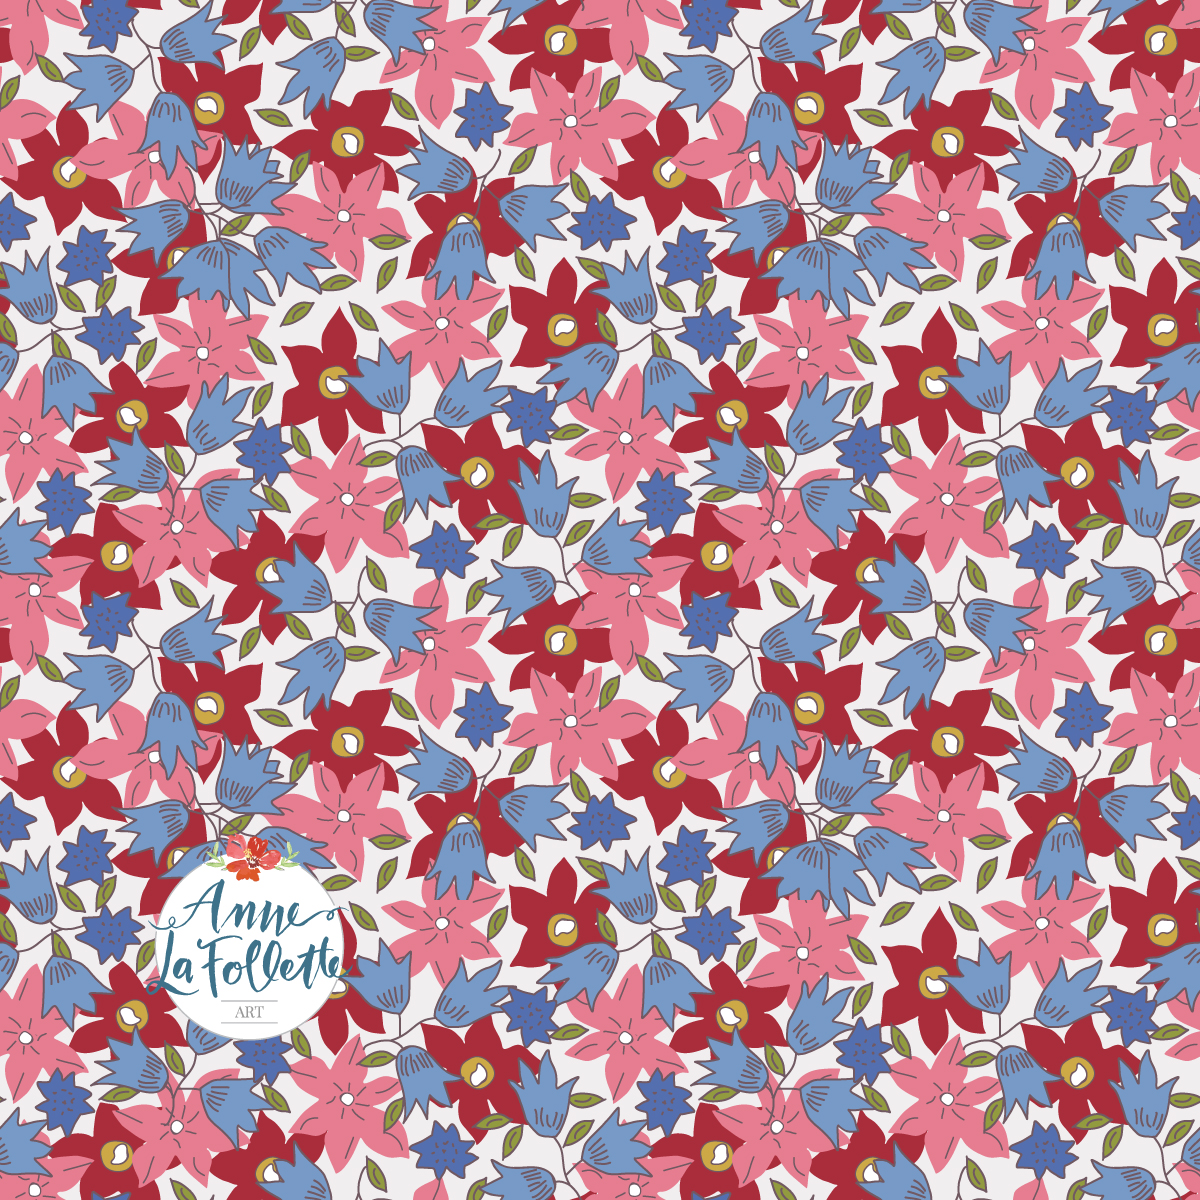 liberty-flowers-layered-pattern.jpg